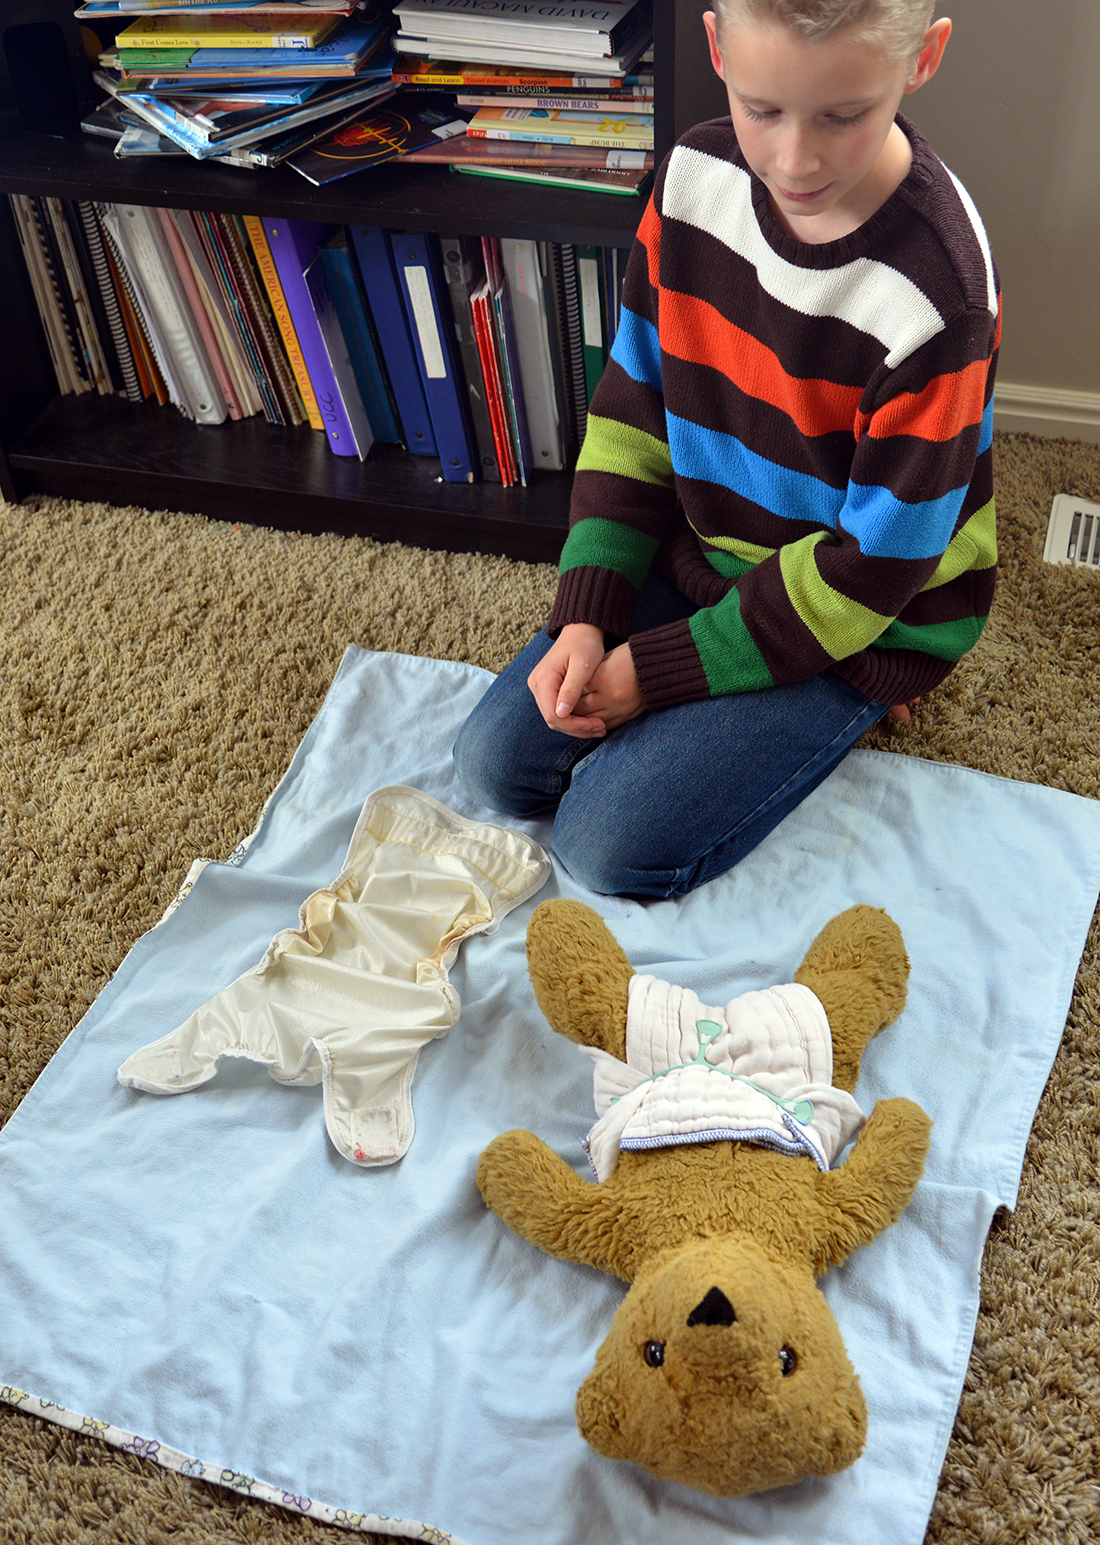 A school of fish: Diapering contests